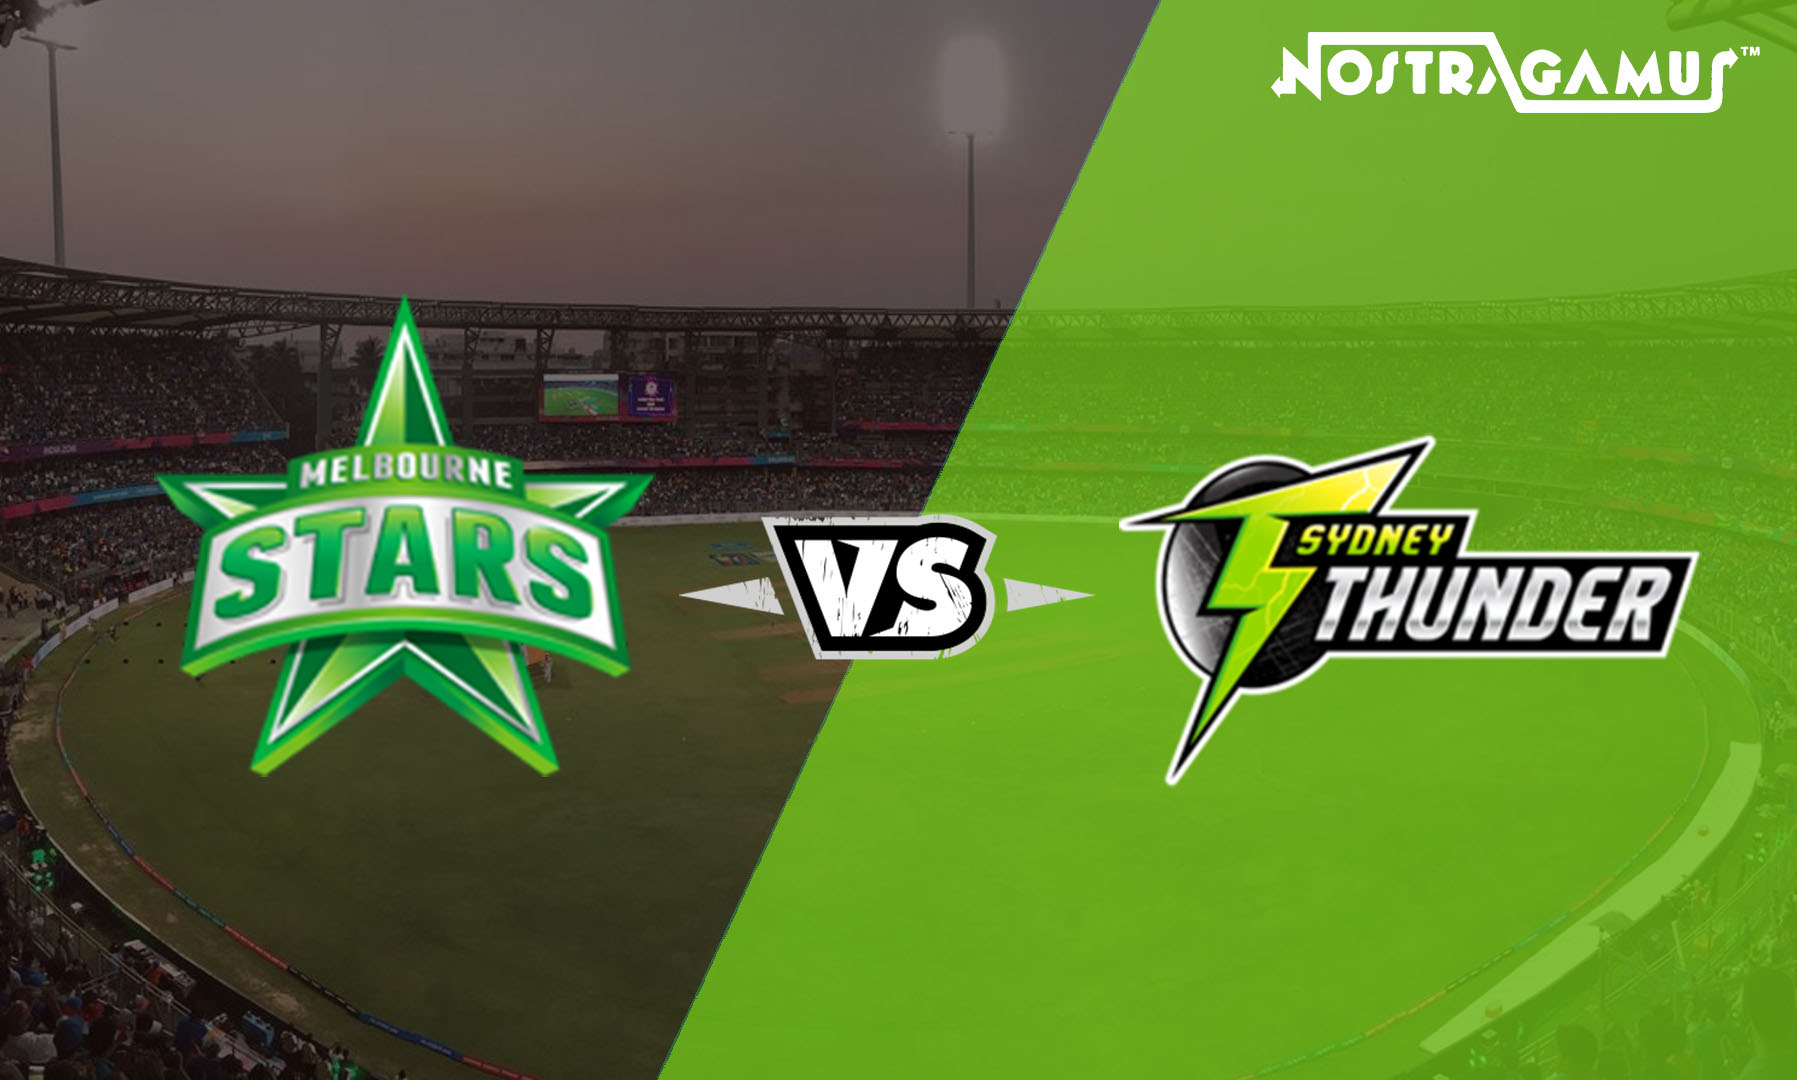 BBL 2019 Match Prediction: Melbourne Stars vs Sydney Thunder